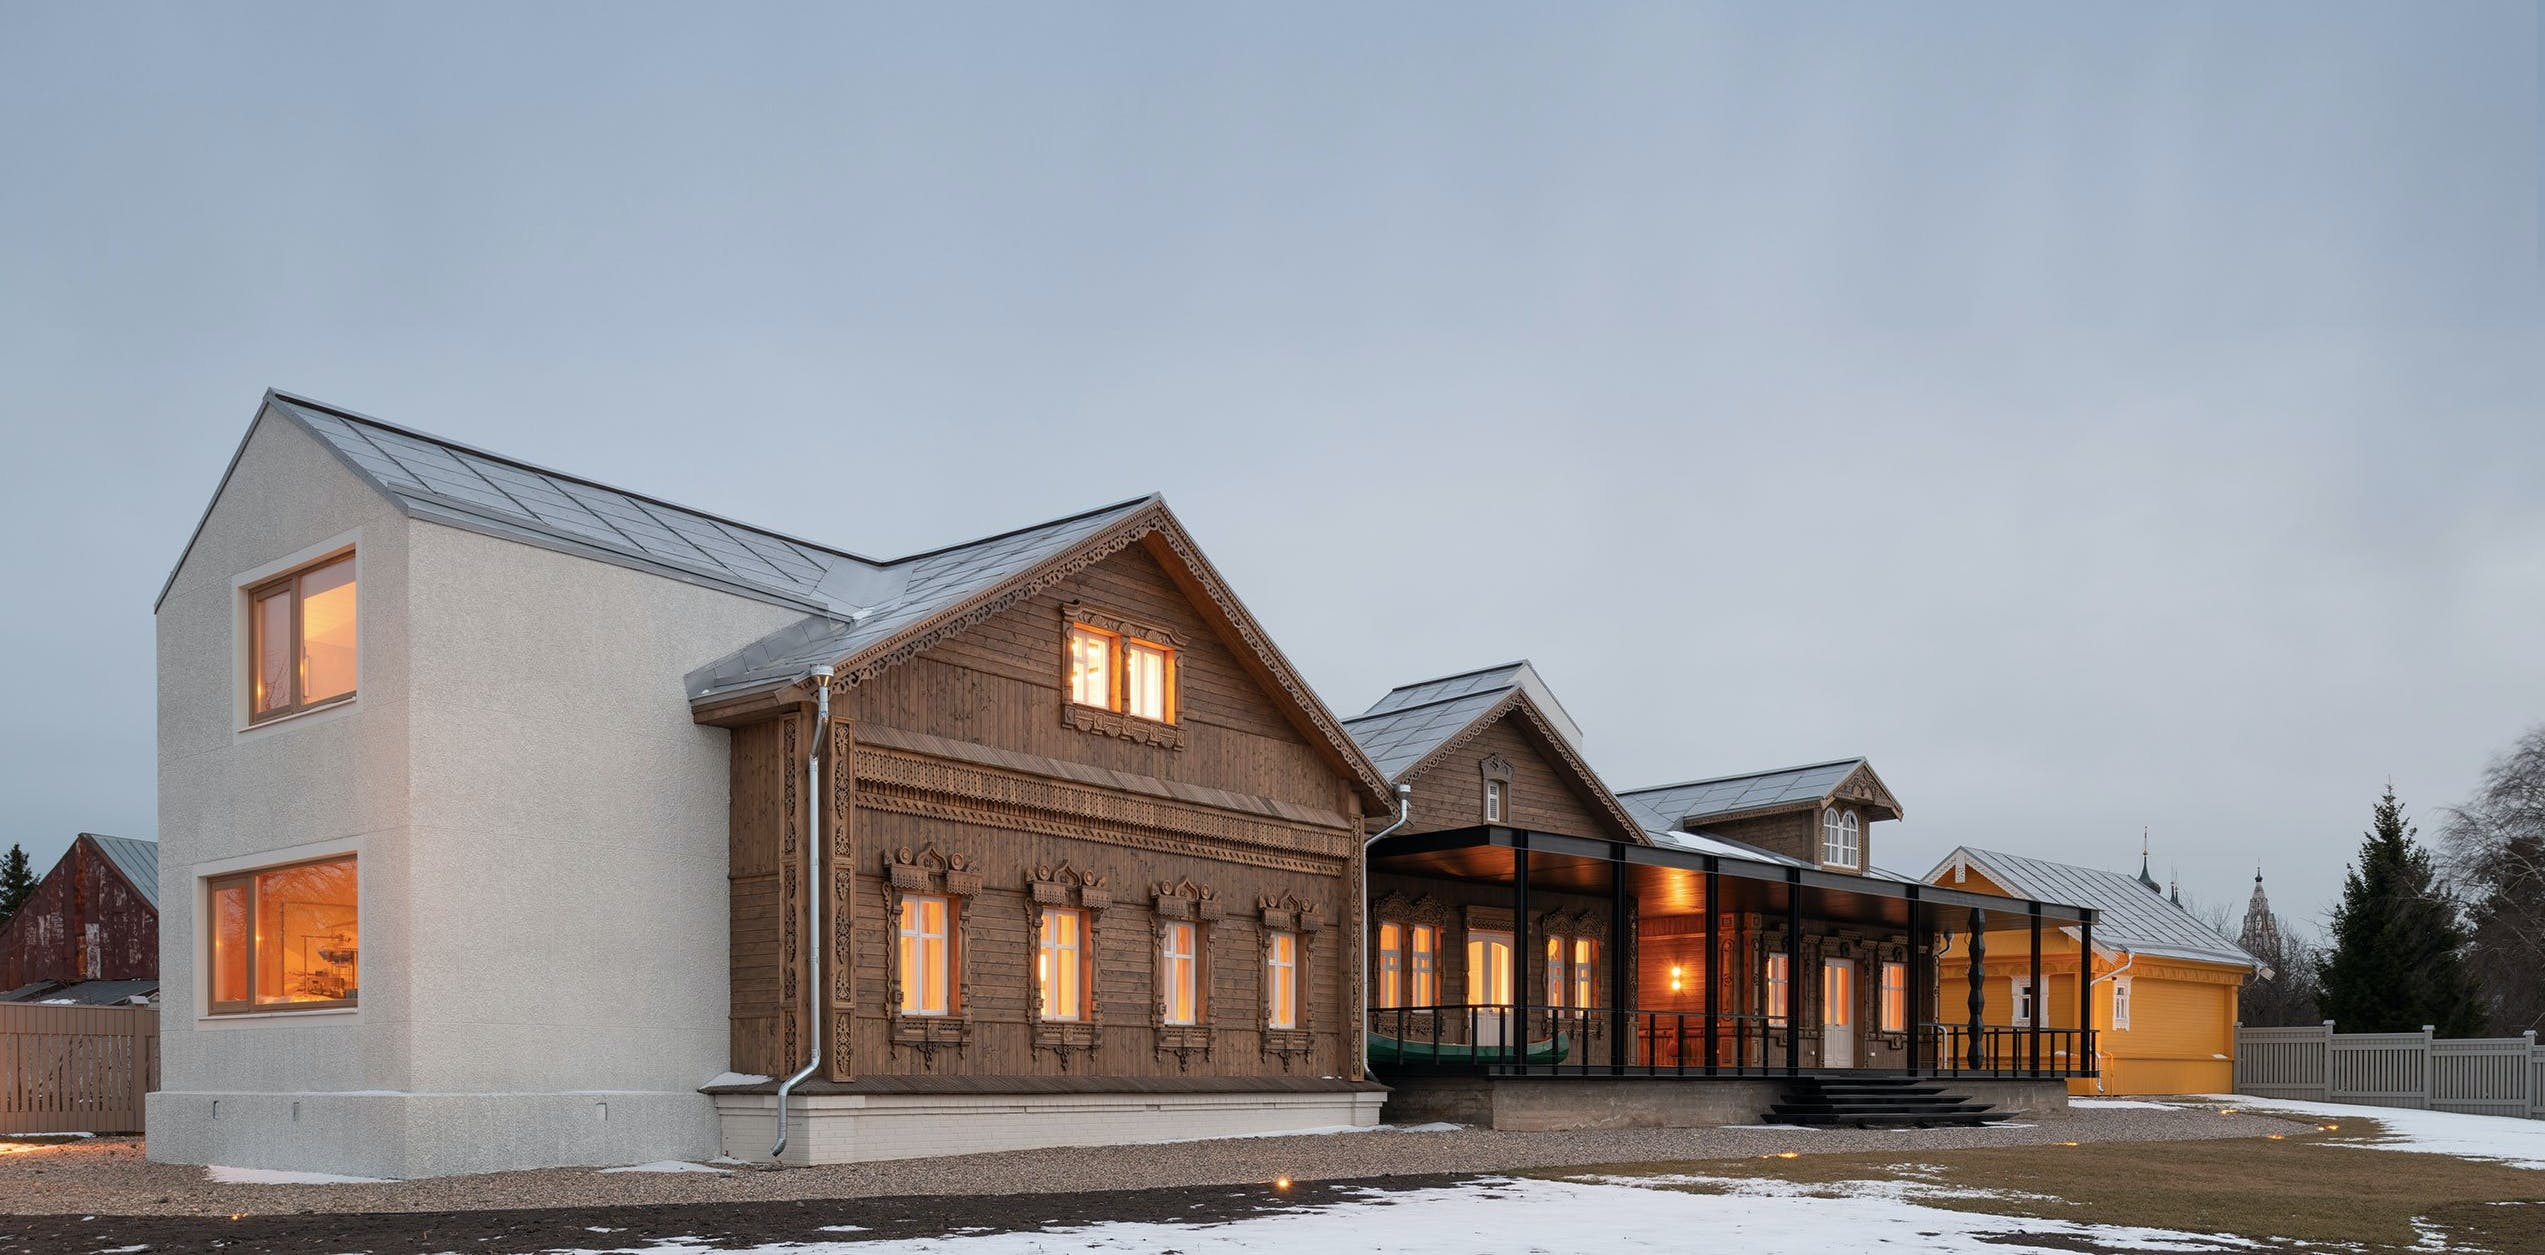 Vernacular Craftsmanship Meets Contemporary Minimalism in a Renovated Dacha in Rural Russia